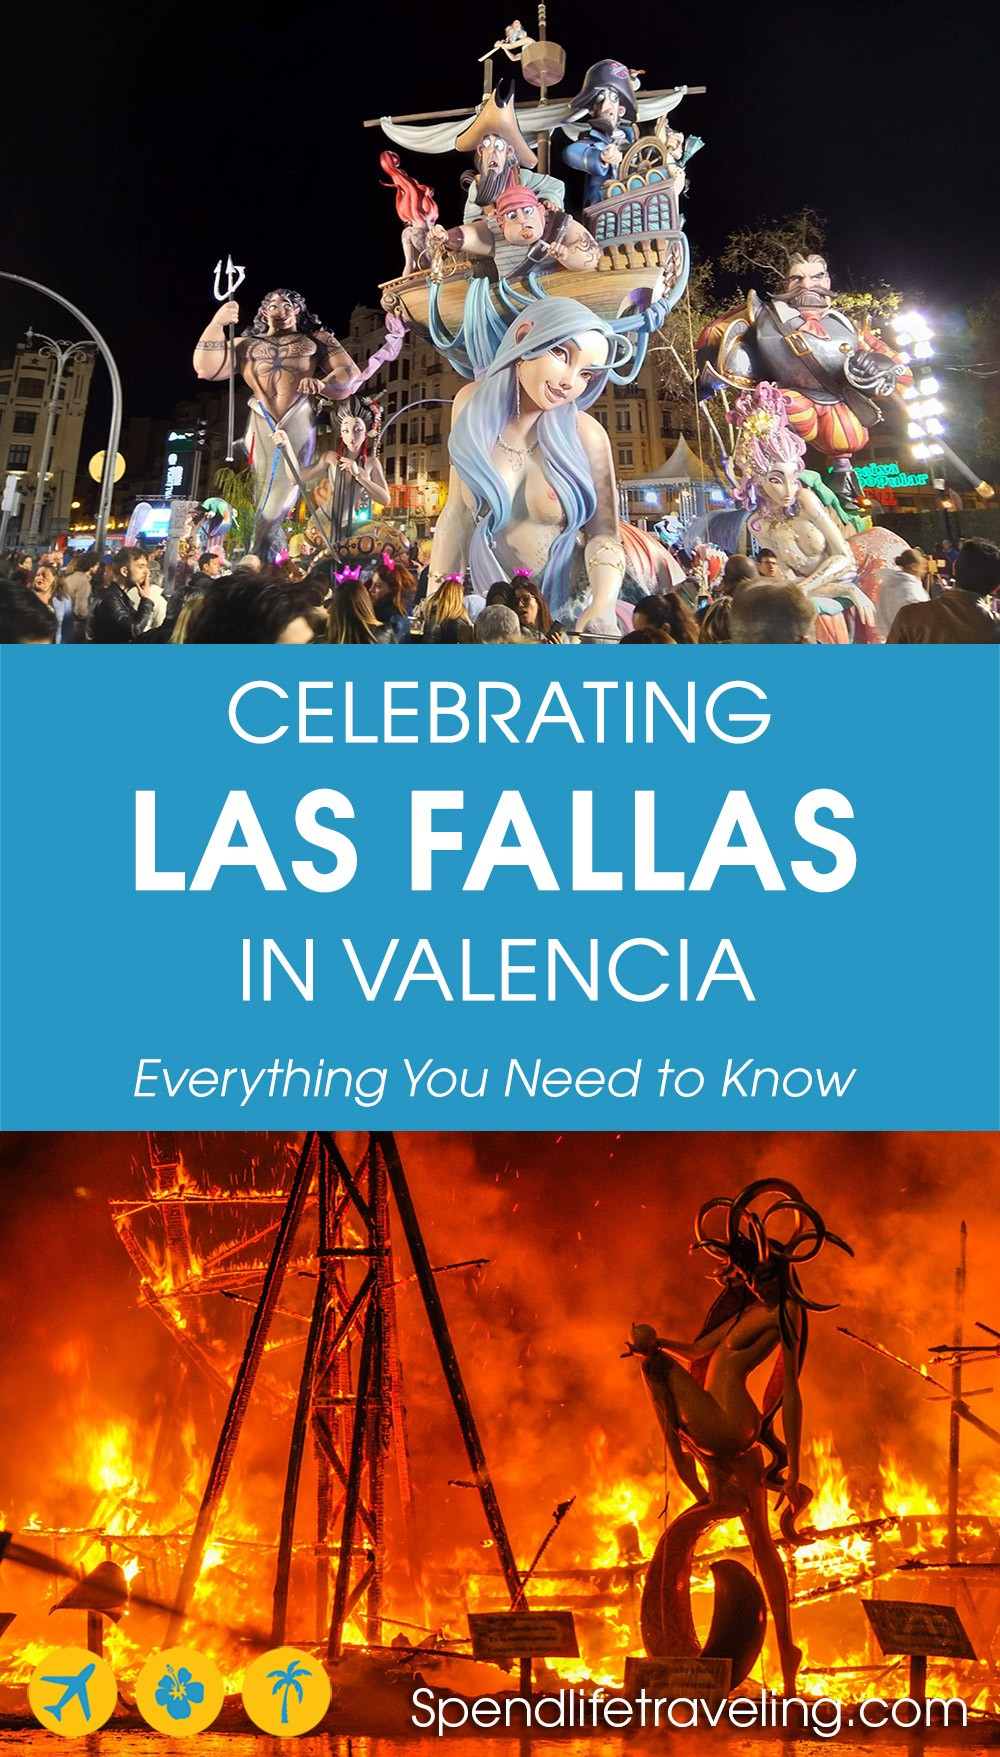 Everything you need to know about celebrating the Las Fallas festival in #Valencia, Spain. #LasFallas #Fallas #Spainfestival